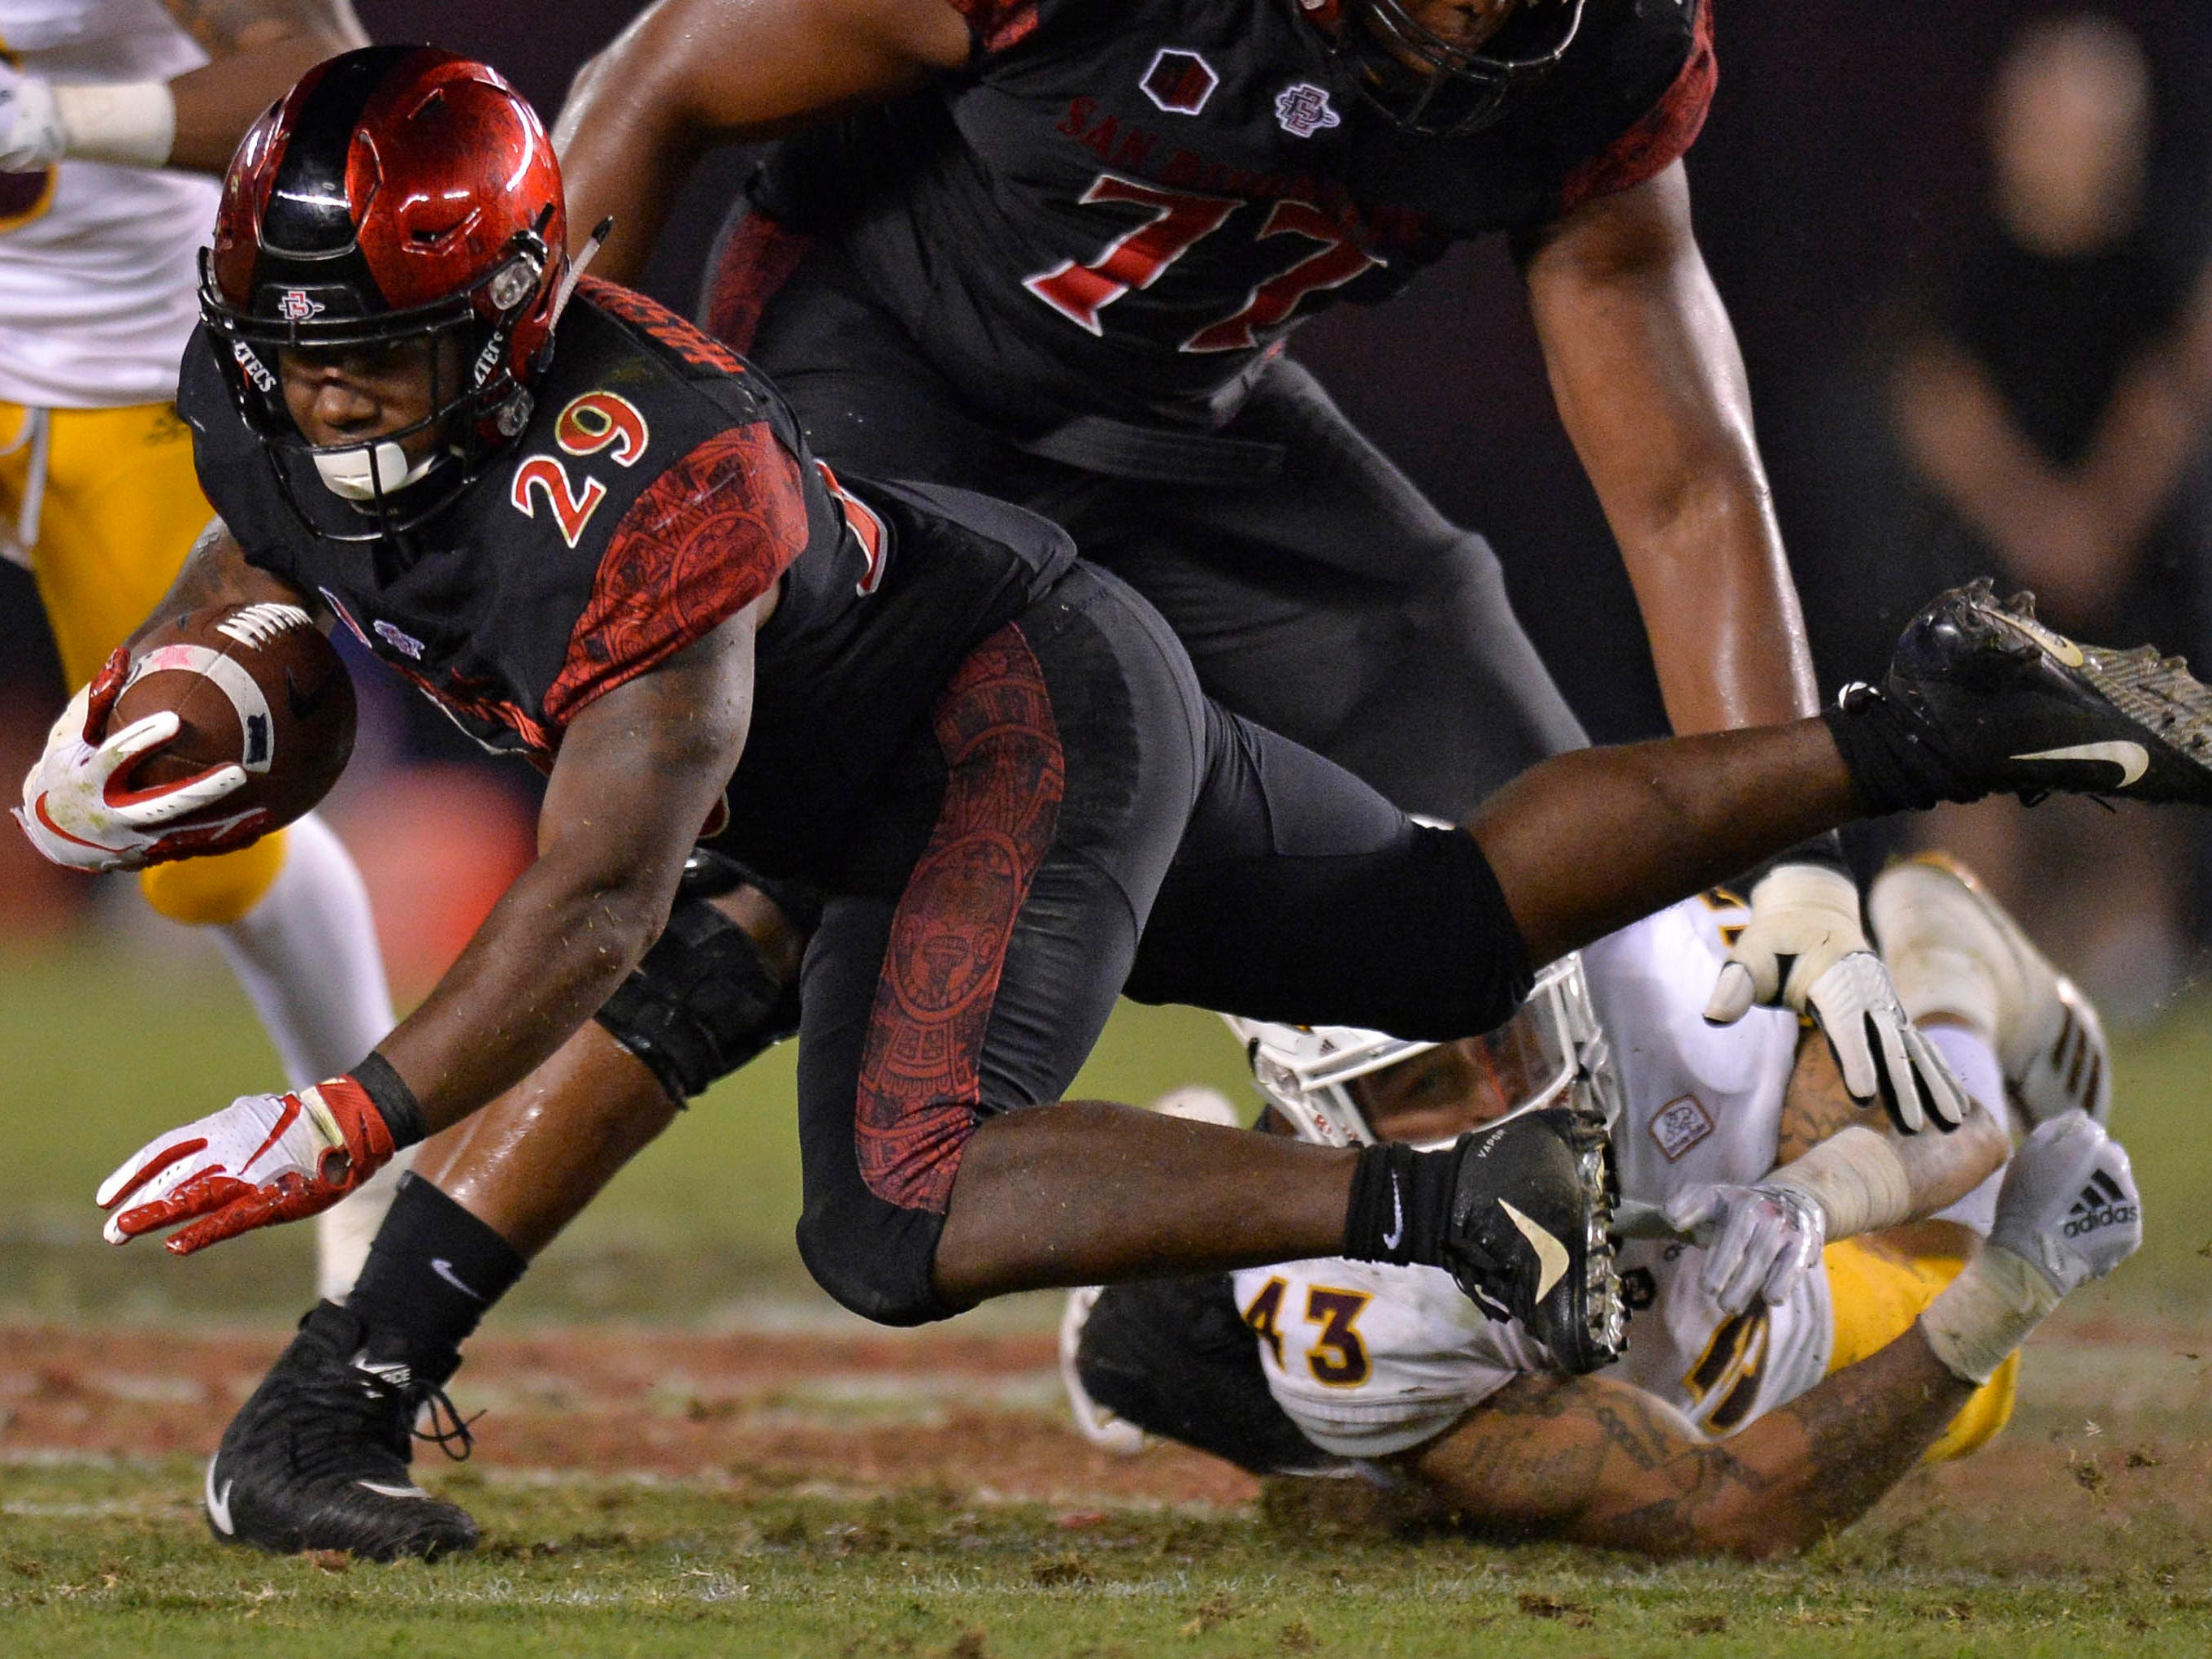 Sep 15, 2018; San Diego, CA, USA; San Diego State Aztecs running back Juwan Washington (29) is tripped up by Arizona State Sun Devils safety Jalen Harvey (43) during the third quarter at SDCCU Stadium. Mandatory Credit: Jake Roth-USA TODAY Sports